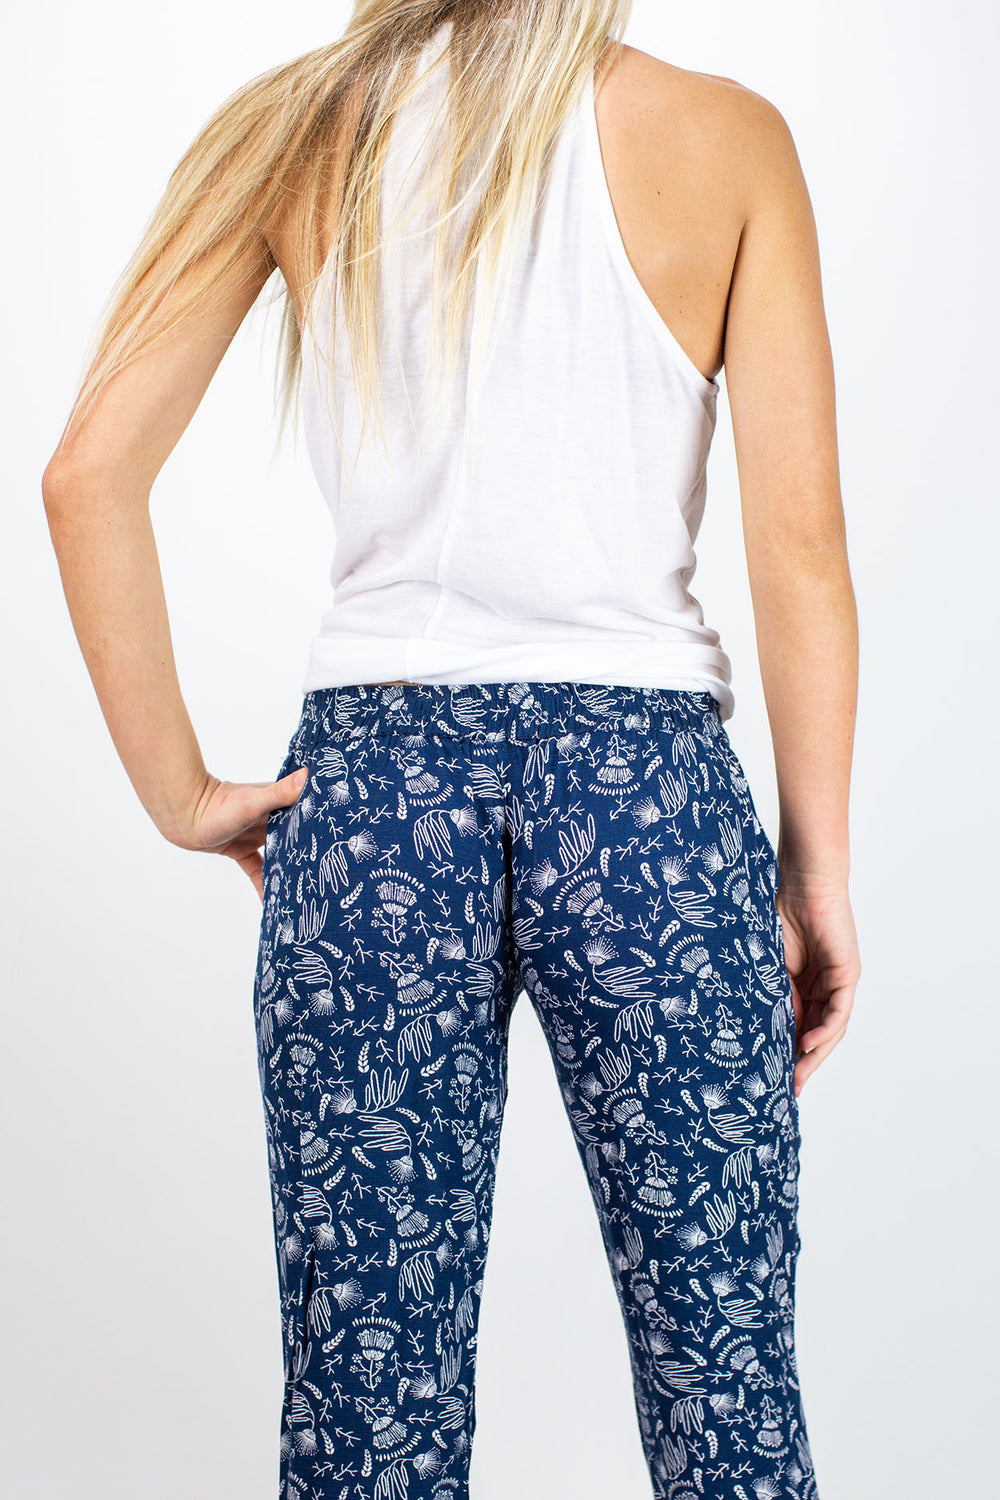 Jetty - Beach Bum Pants- Navy